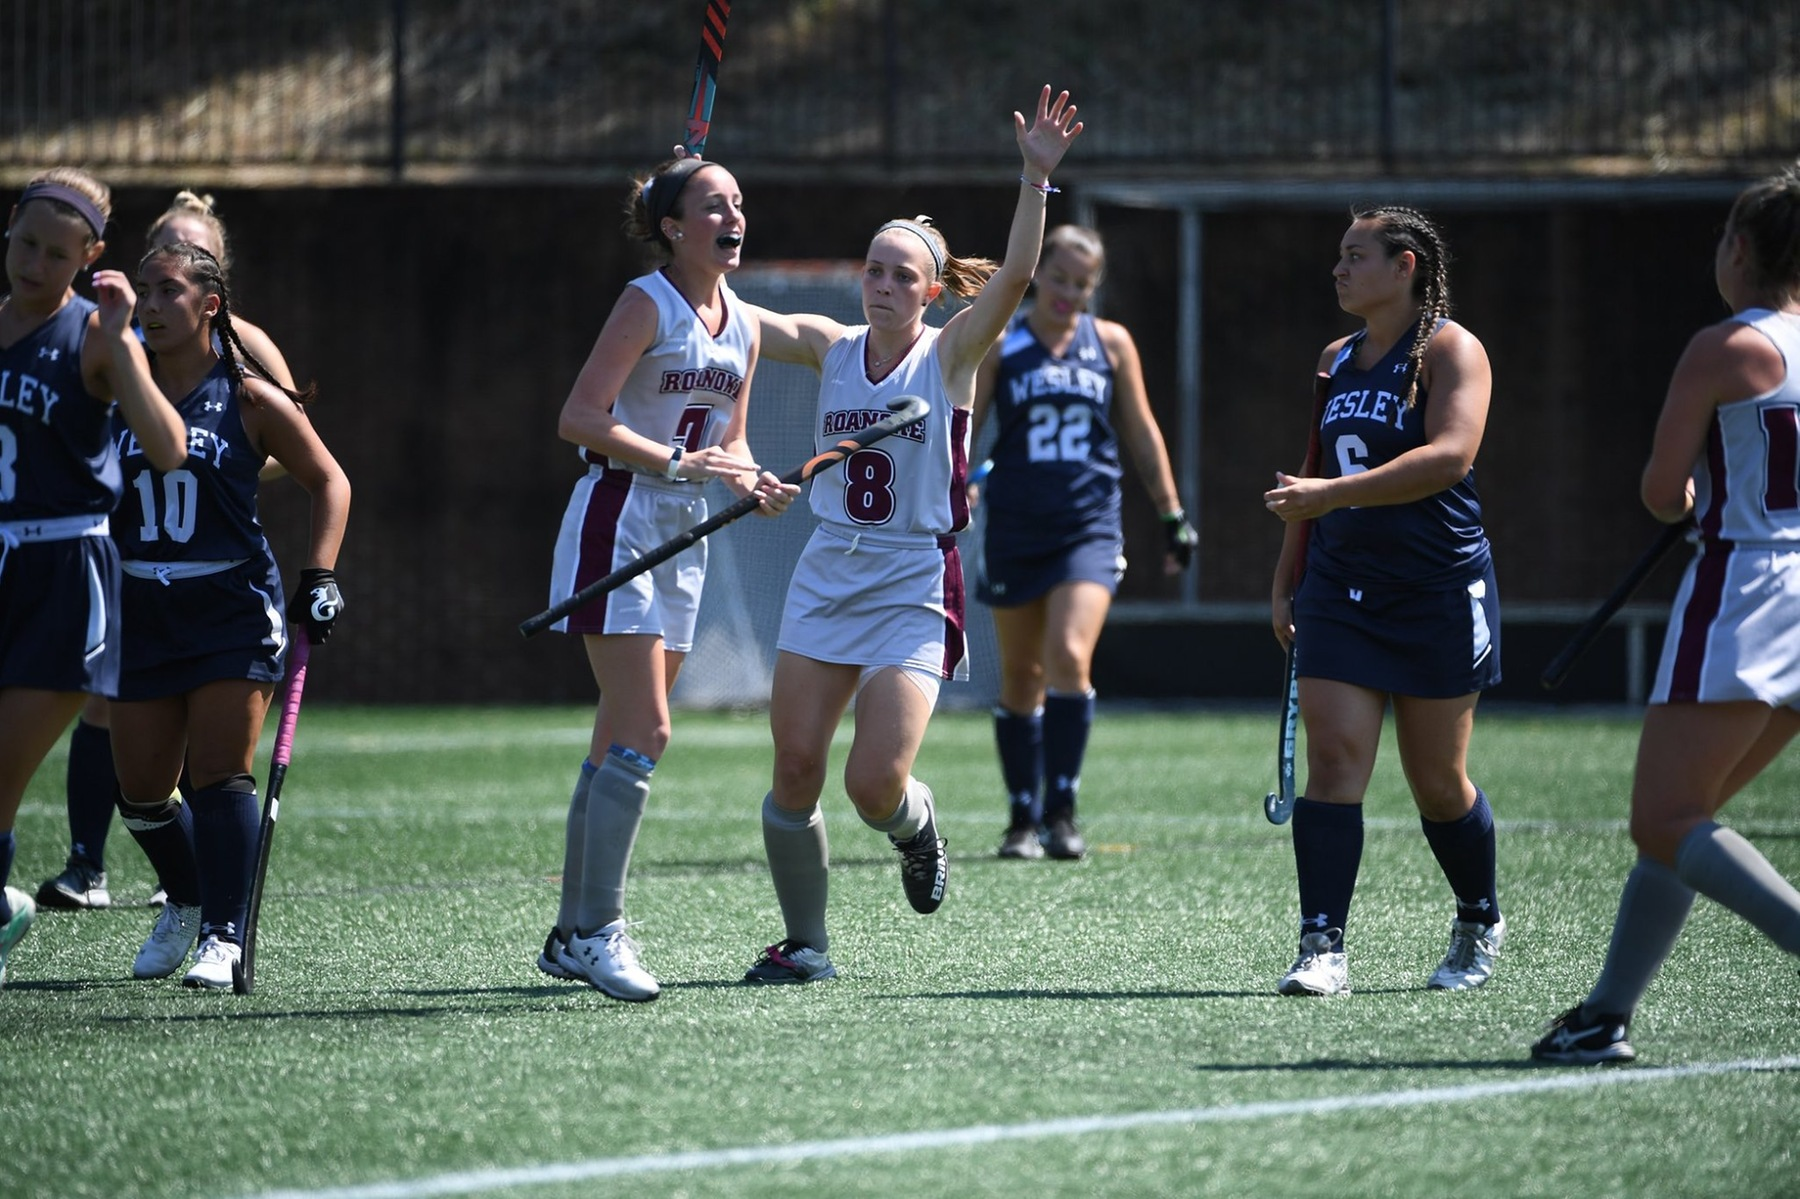 Martha Hurley had a pair of goals in a win over Sewanee